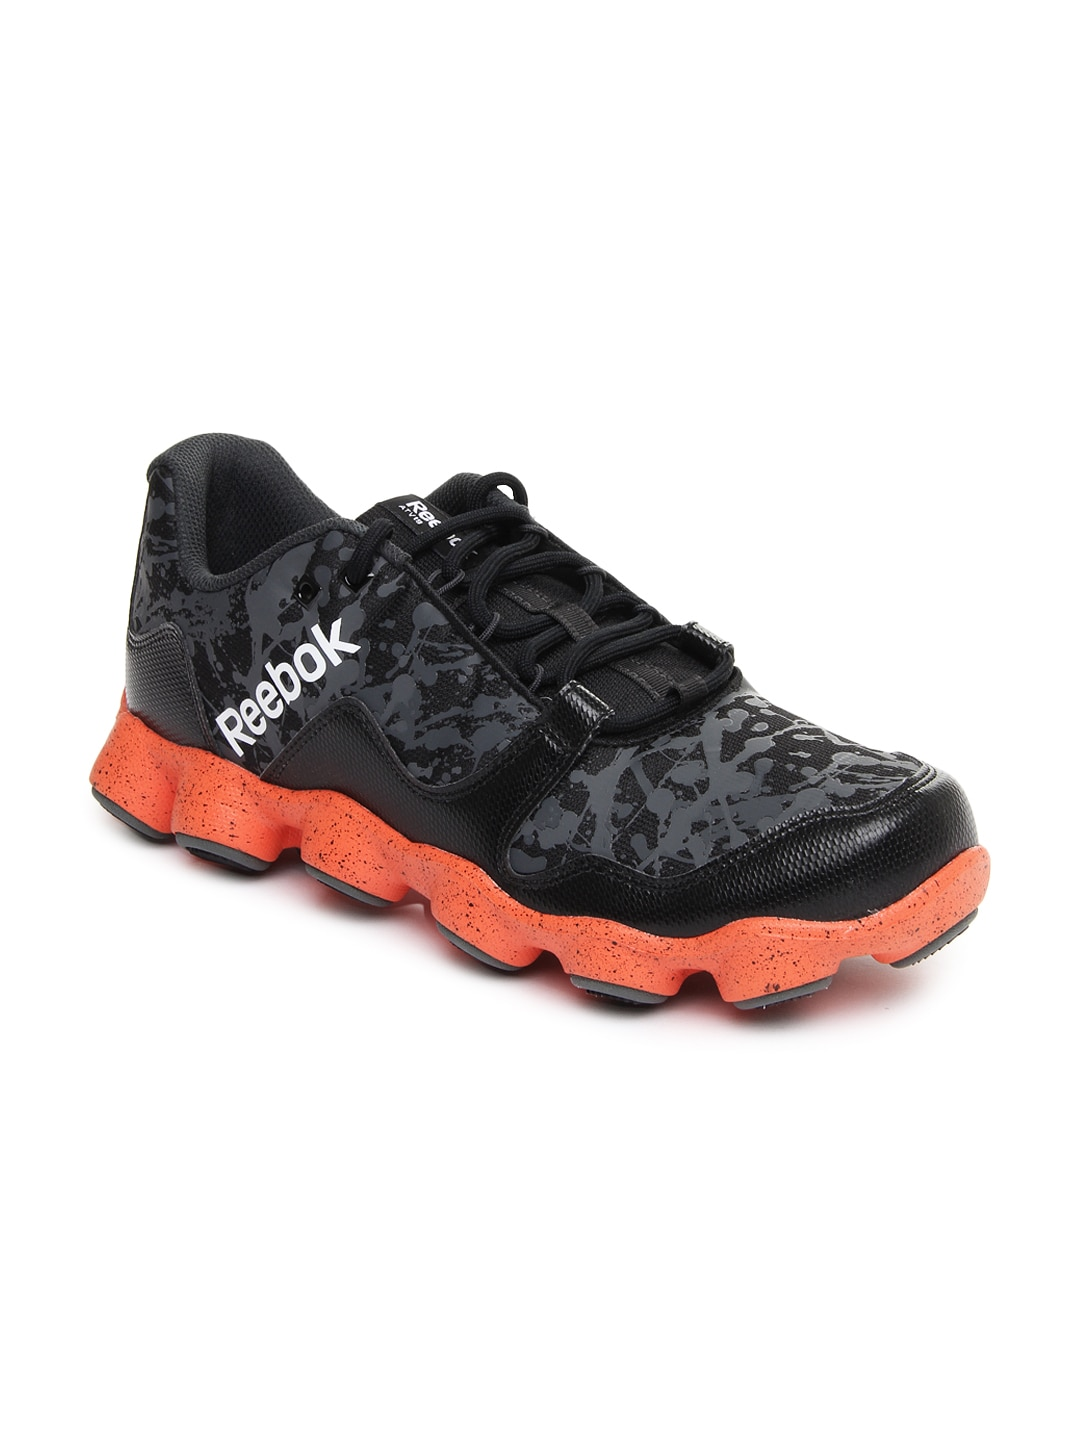 Reebok m44109 Men Black Grey Atv19 Ultimate Running Shoes- Price in India f37f98a9c